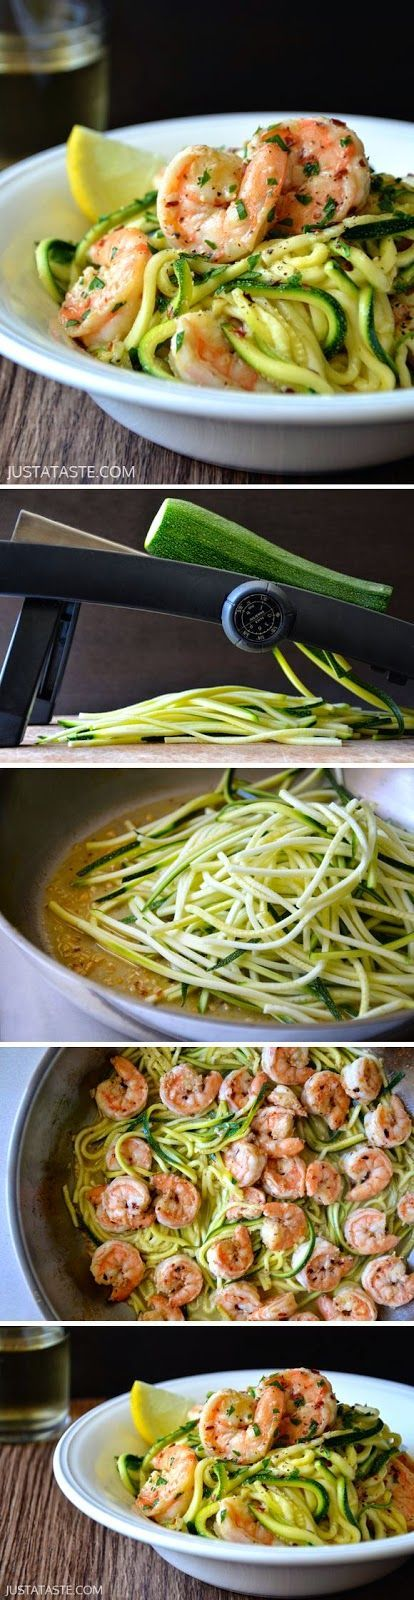 Zucchini noodle pasta! Yummo! Add even more fresh and ideally organic produce and veggies like peas for even more nutrition and robust taste!